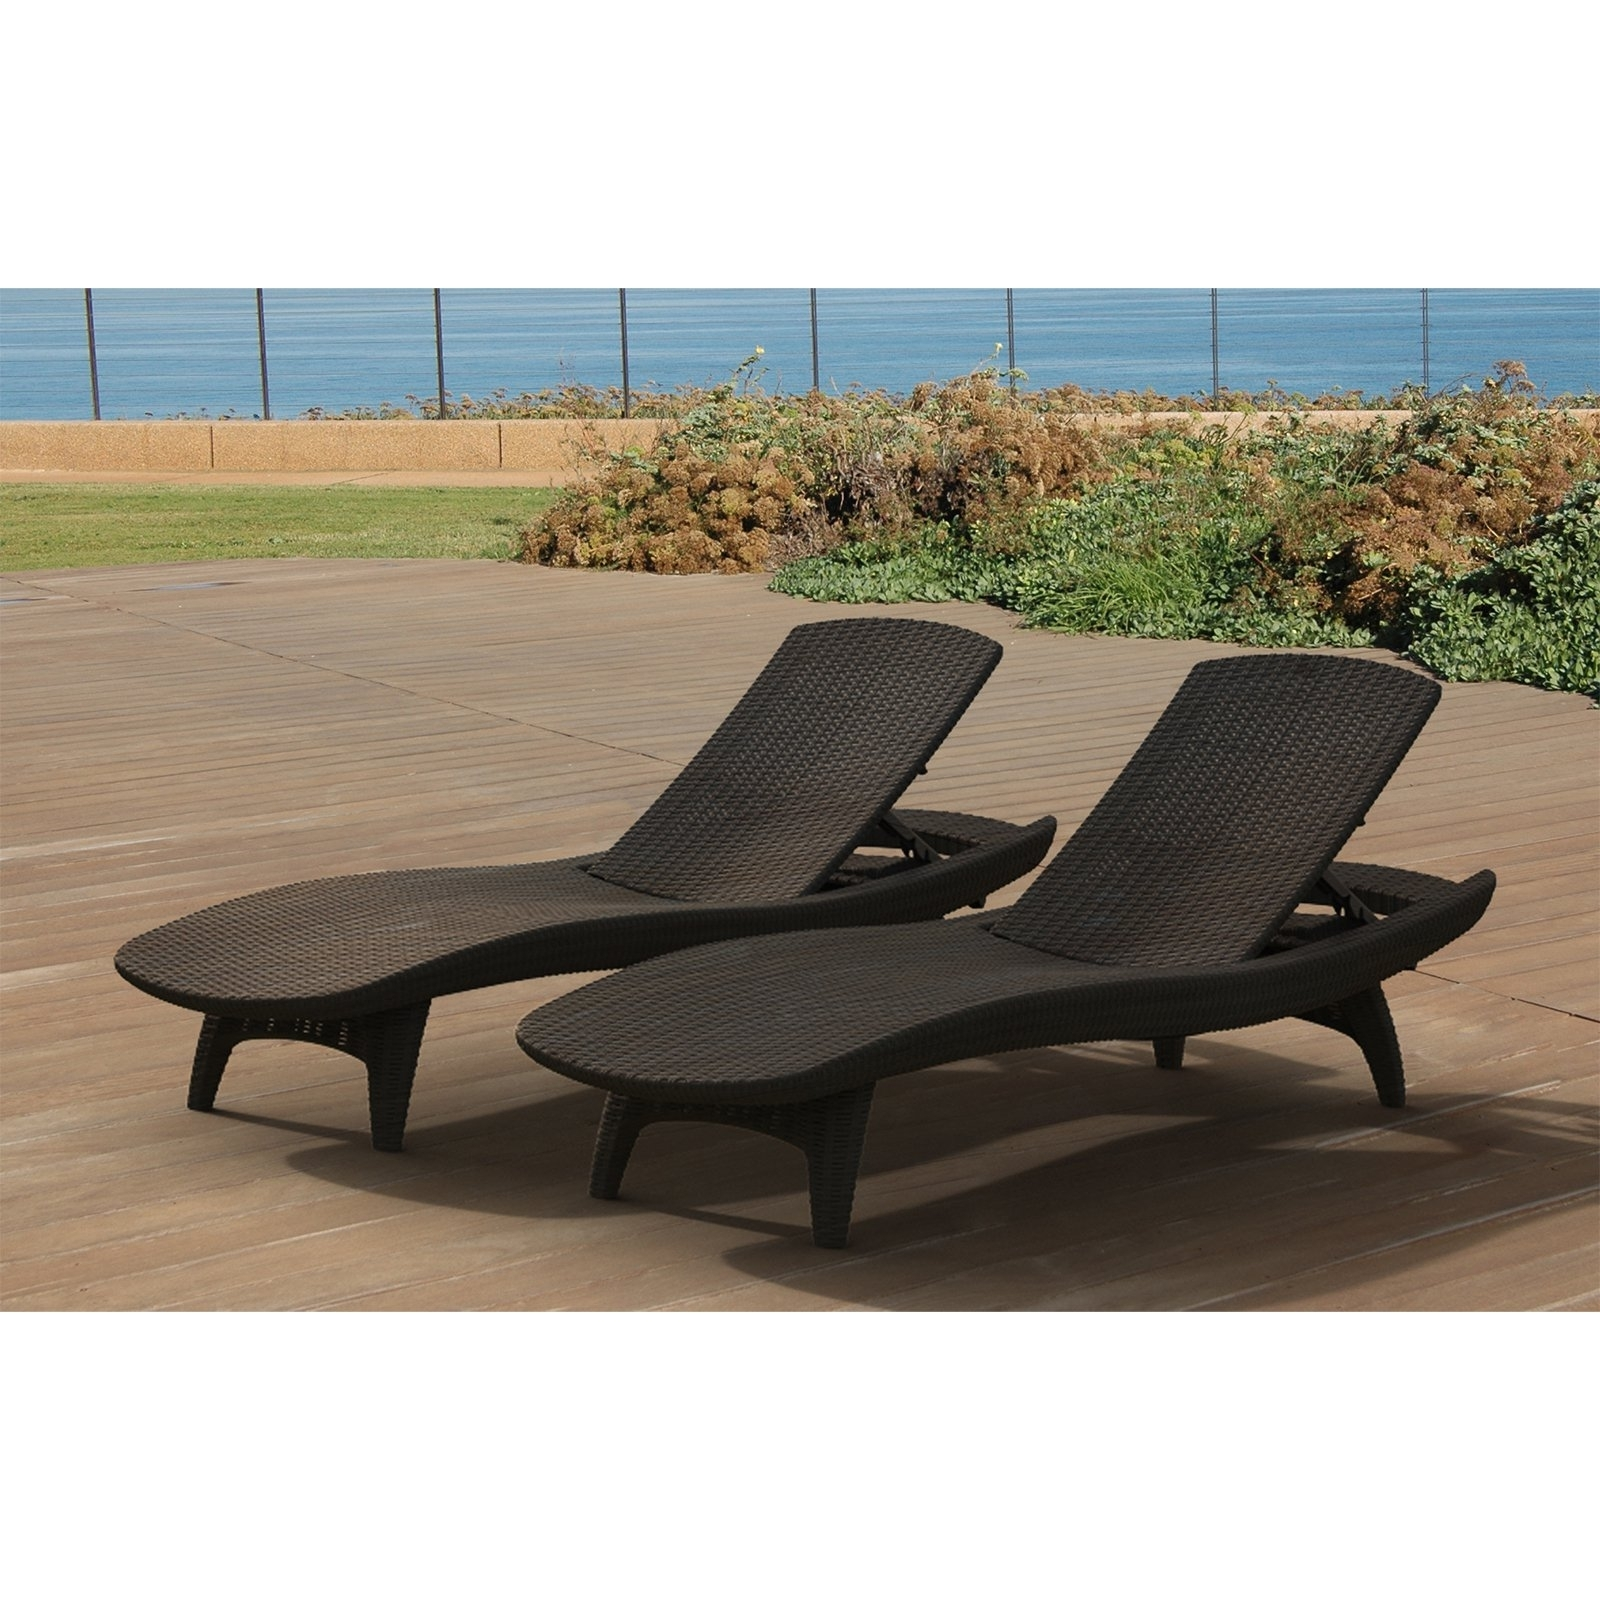 Patio Furniture Outlet Inexpensive Outdoor Furniture Beach Lounge Inside Most Popular Outdoor Pool Chaise Lounge Chairs (View 13 of 15)